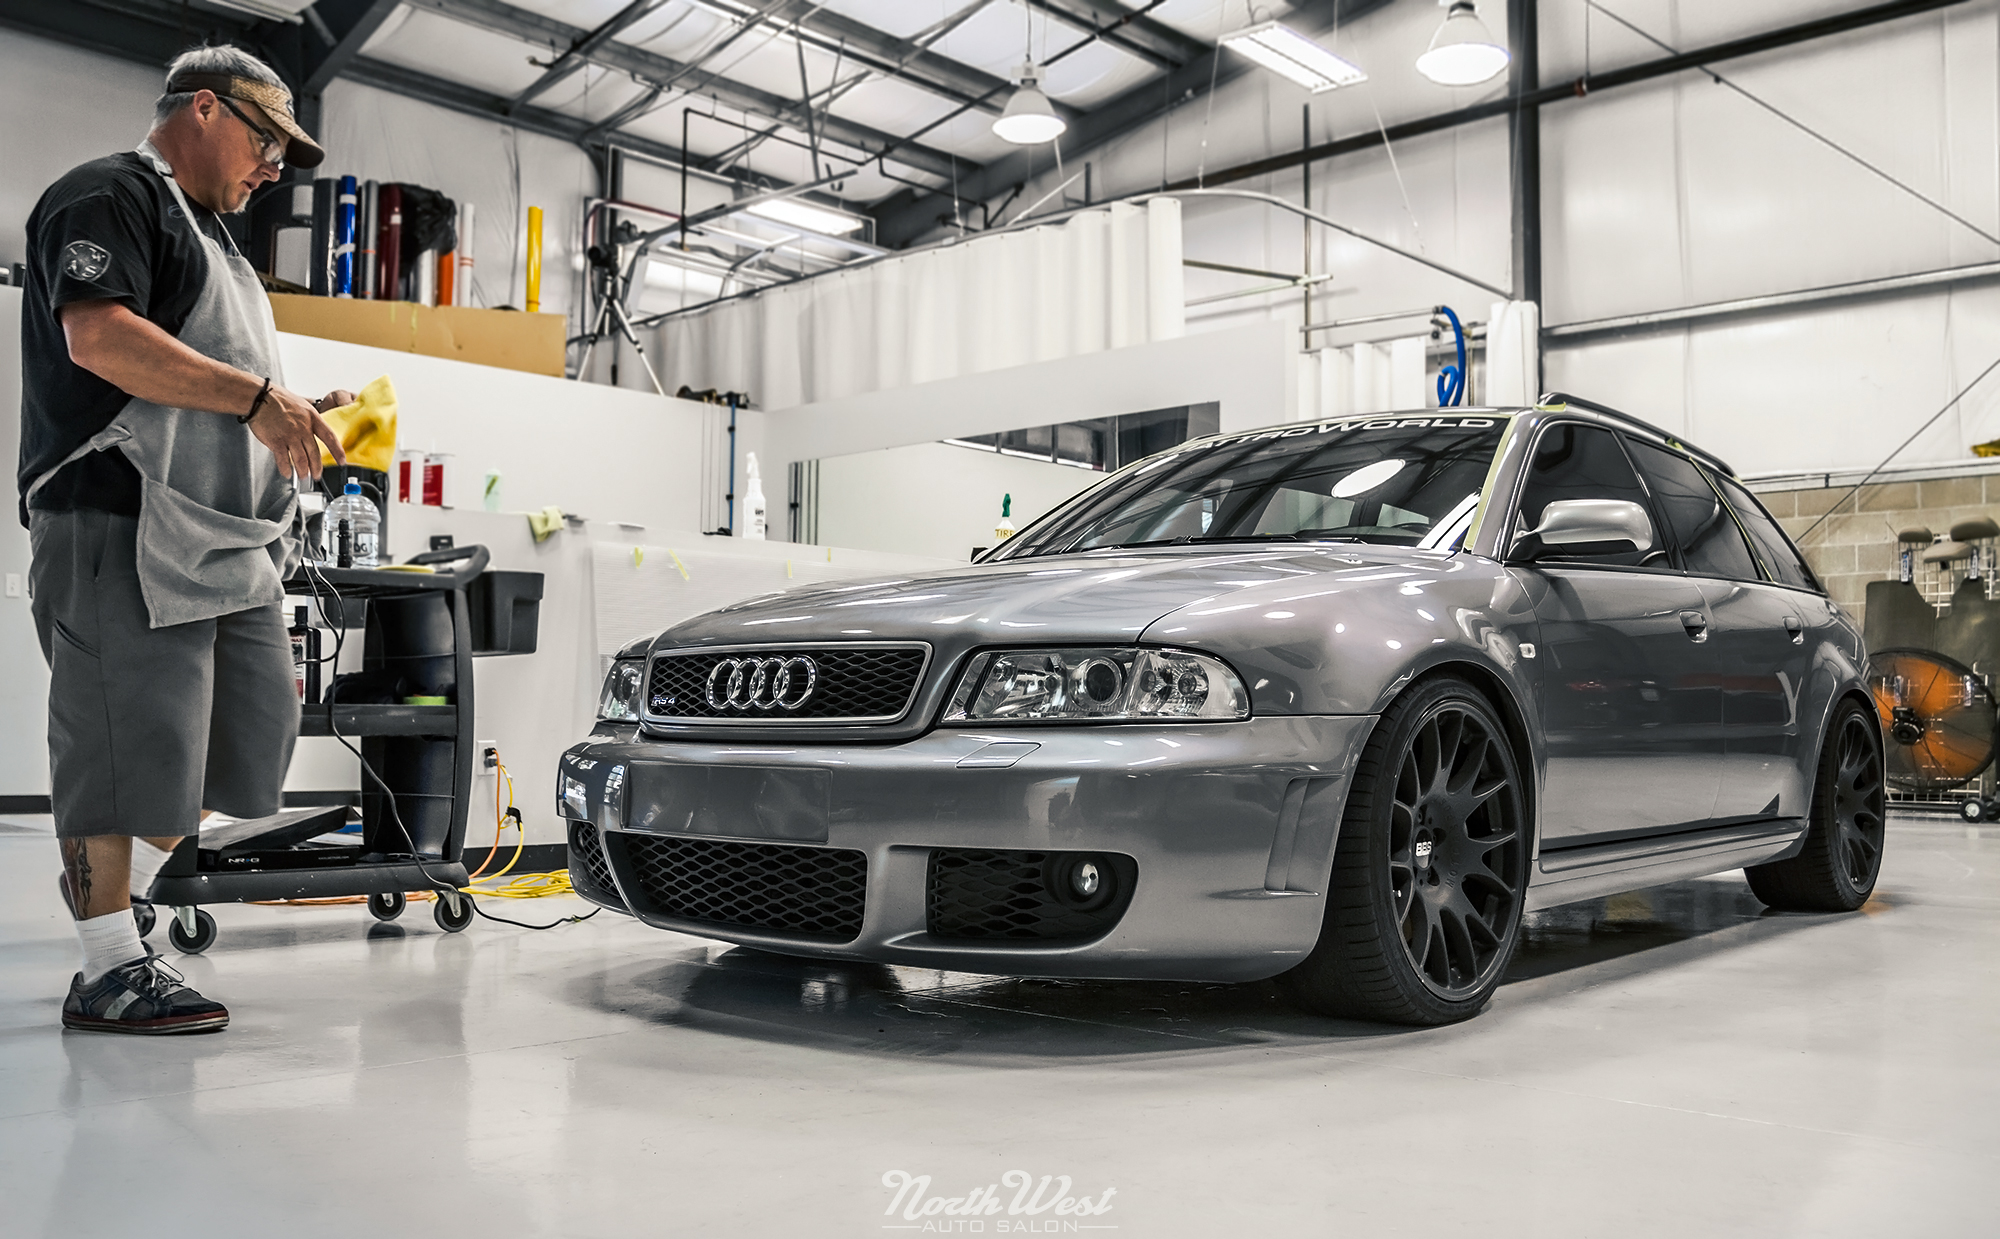 Audi B5 Rs4 Done Right Check Comments For More Pictures